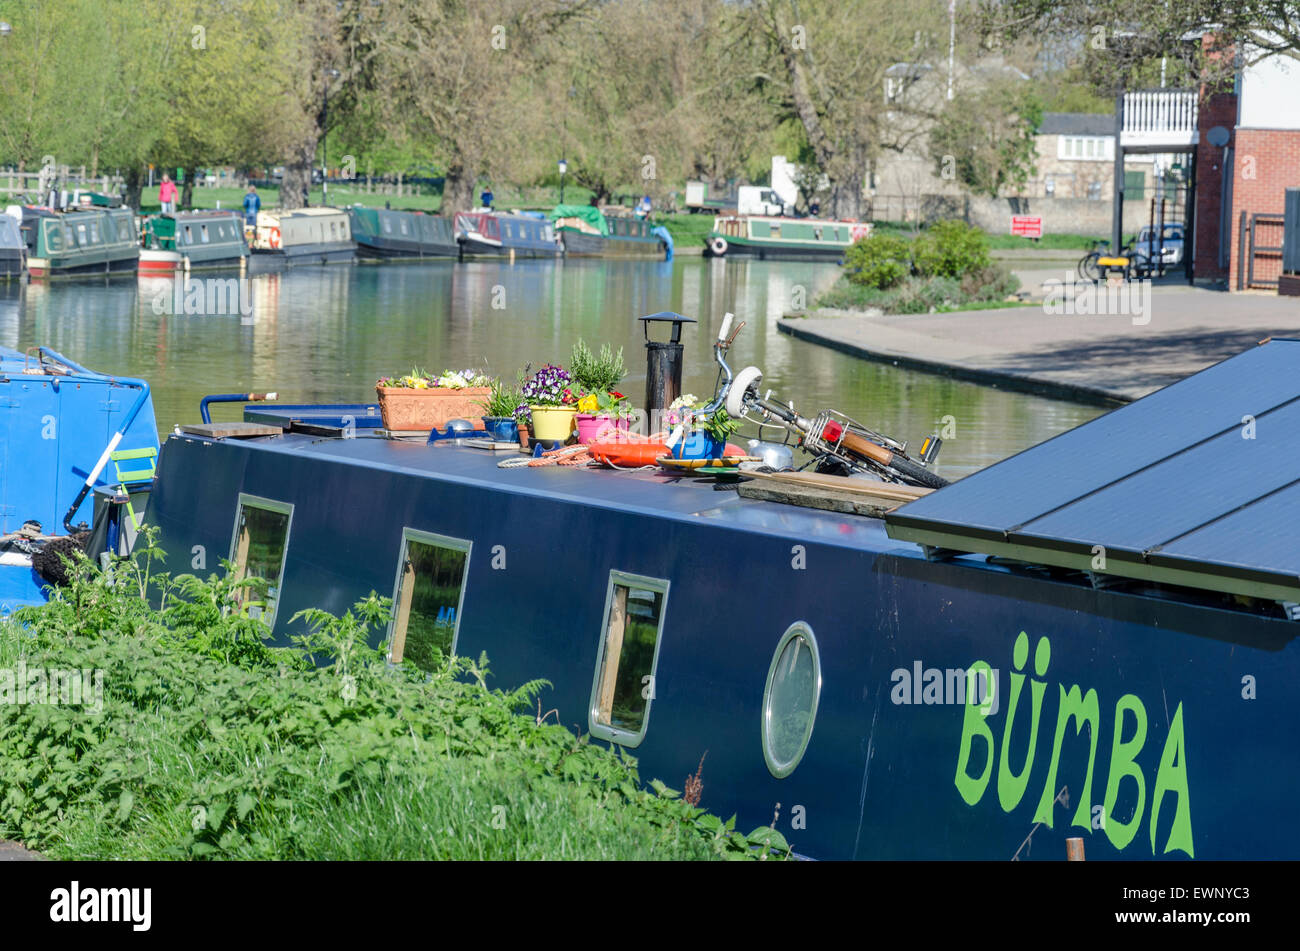 Pot plants and a bike on top of a narrow boat on the River Cam, Cambridge, UK - Stock Image